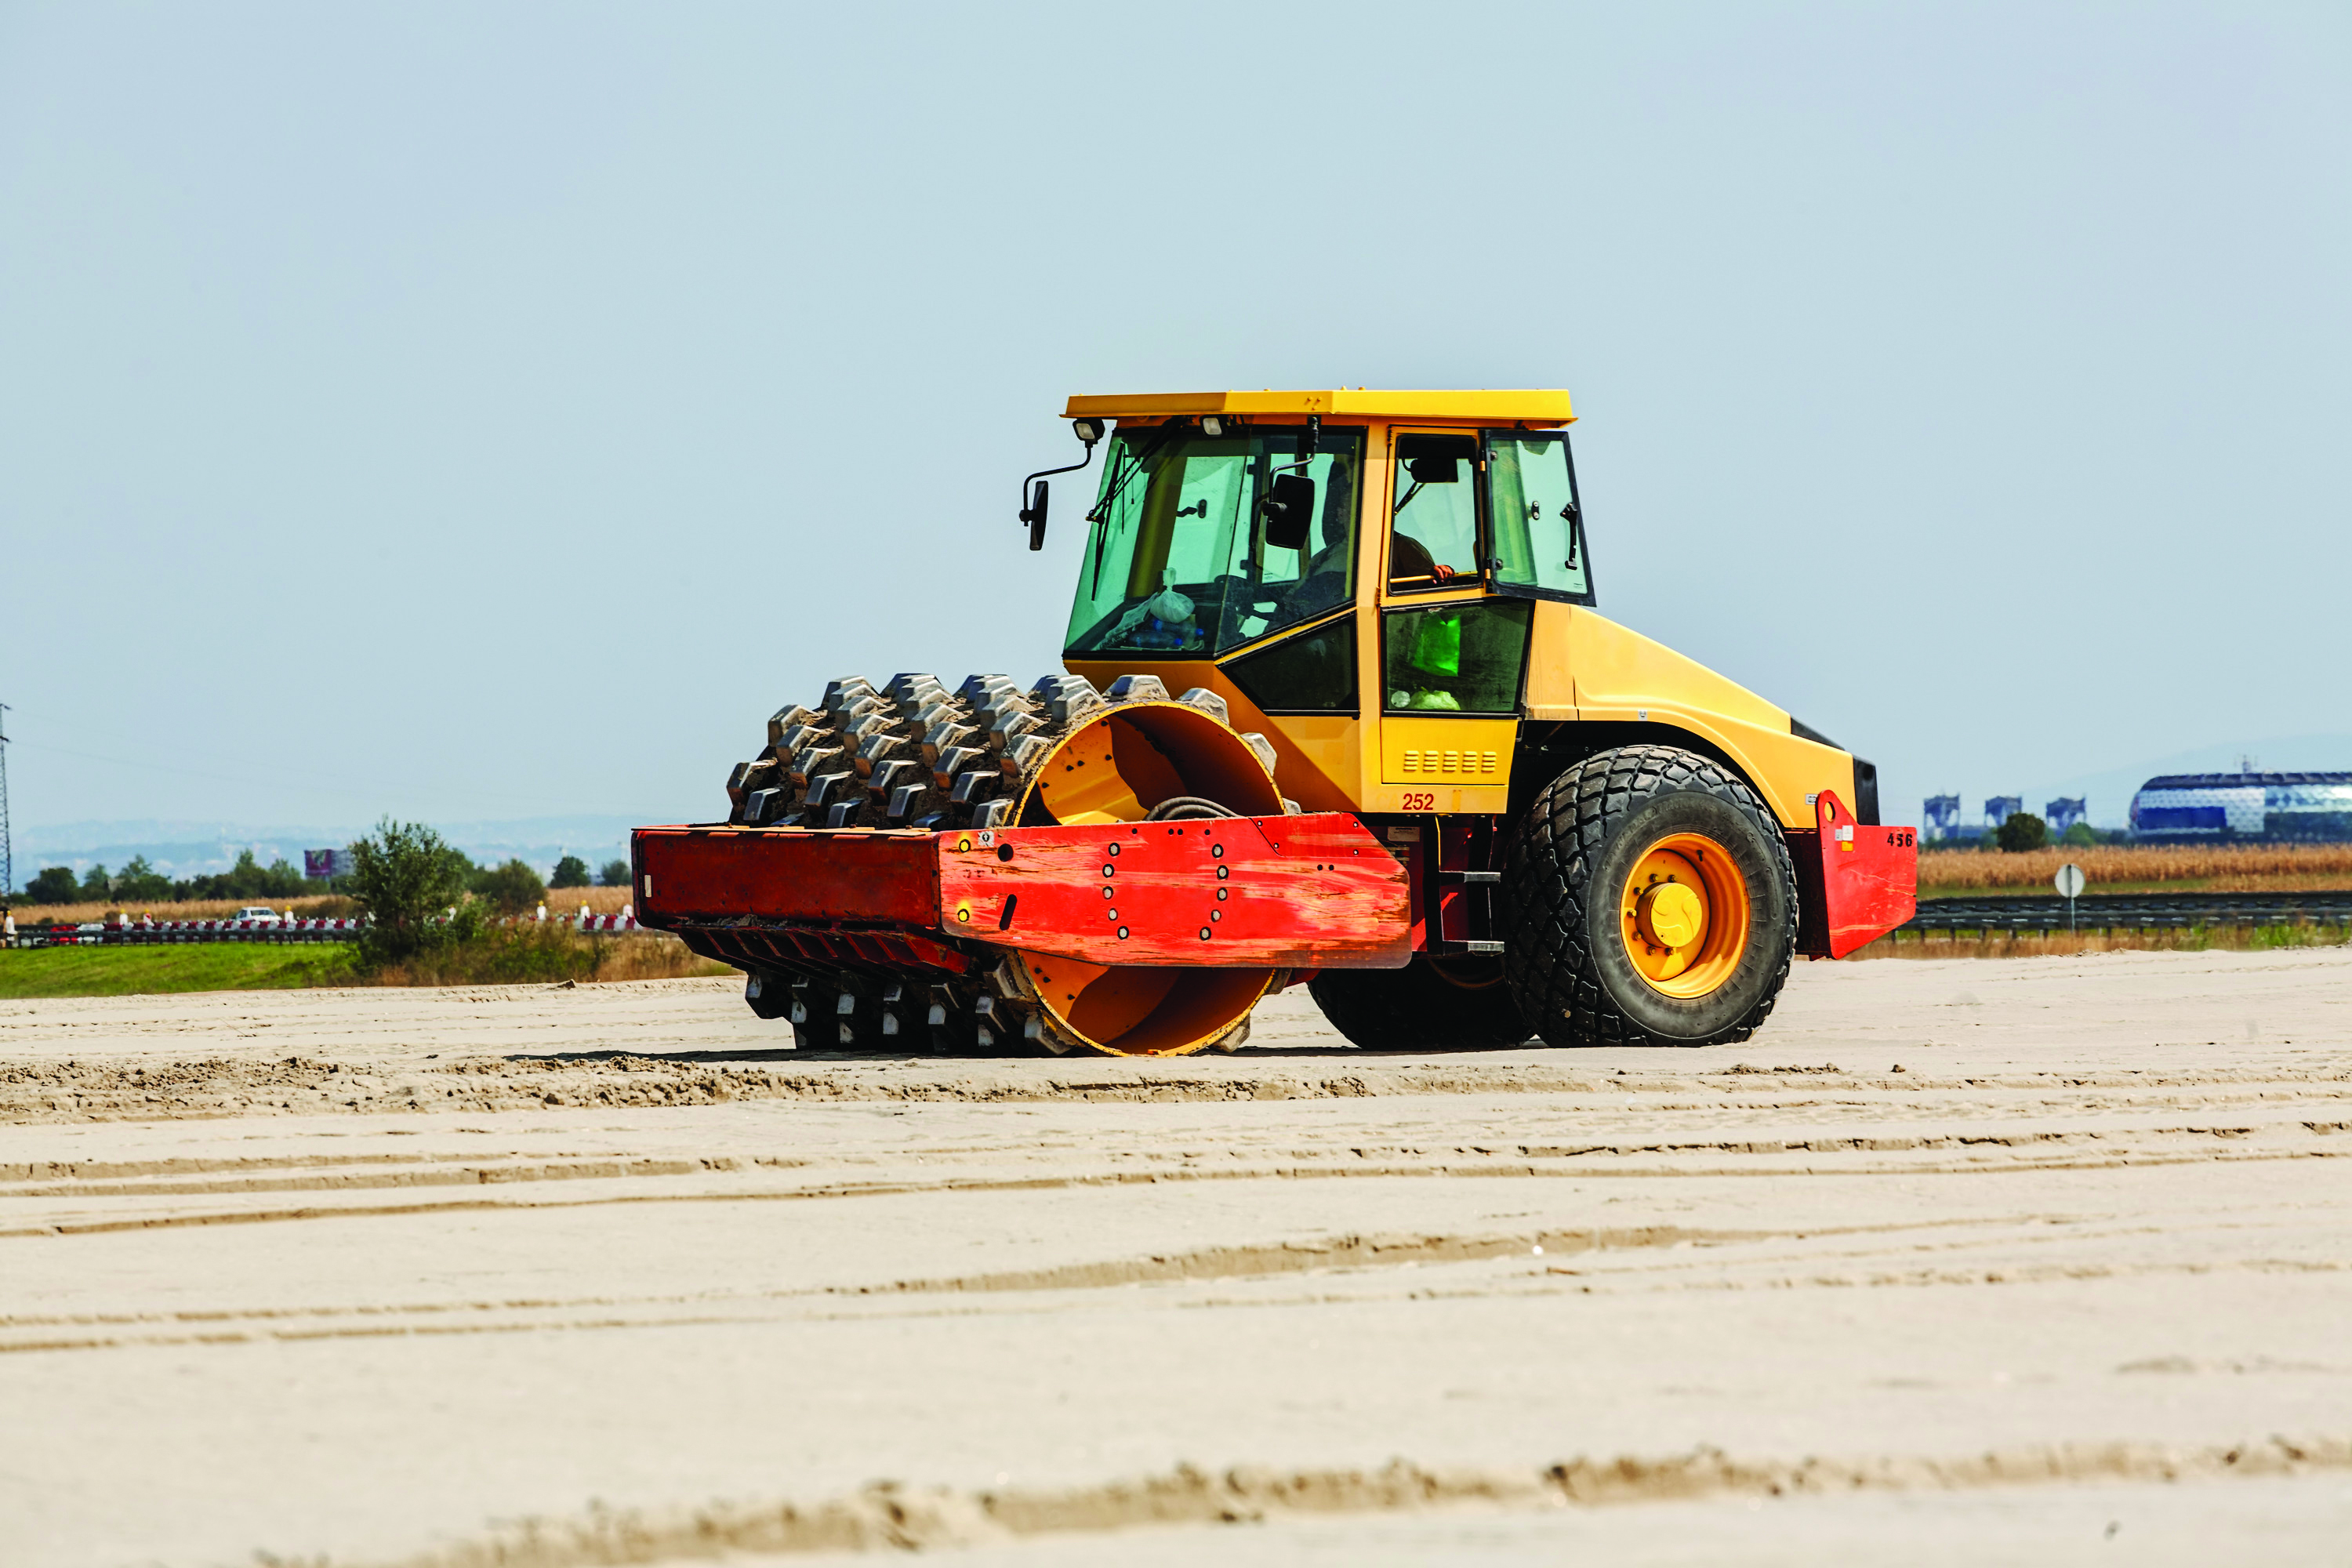 Smooth Wheel Roller. Soil compaction equipment.